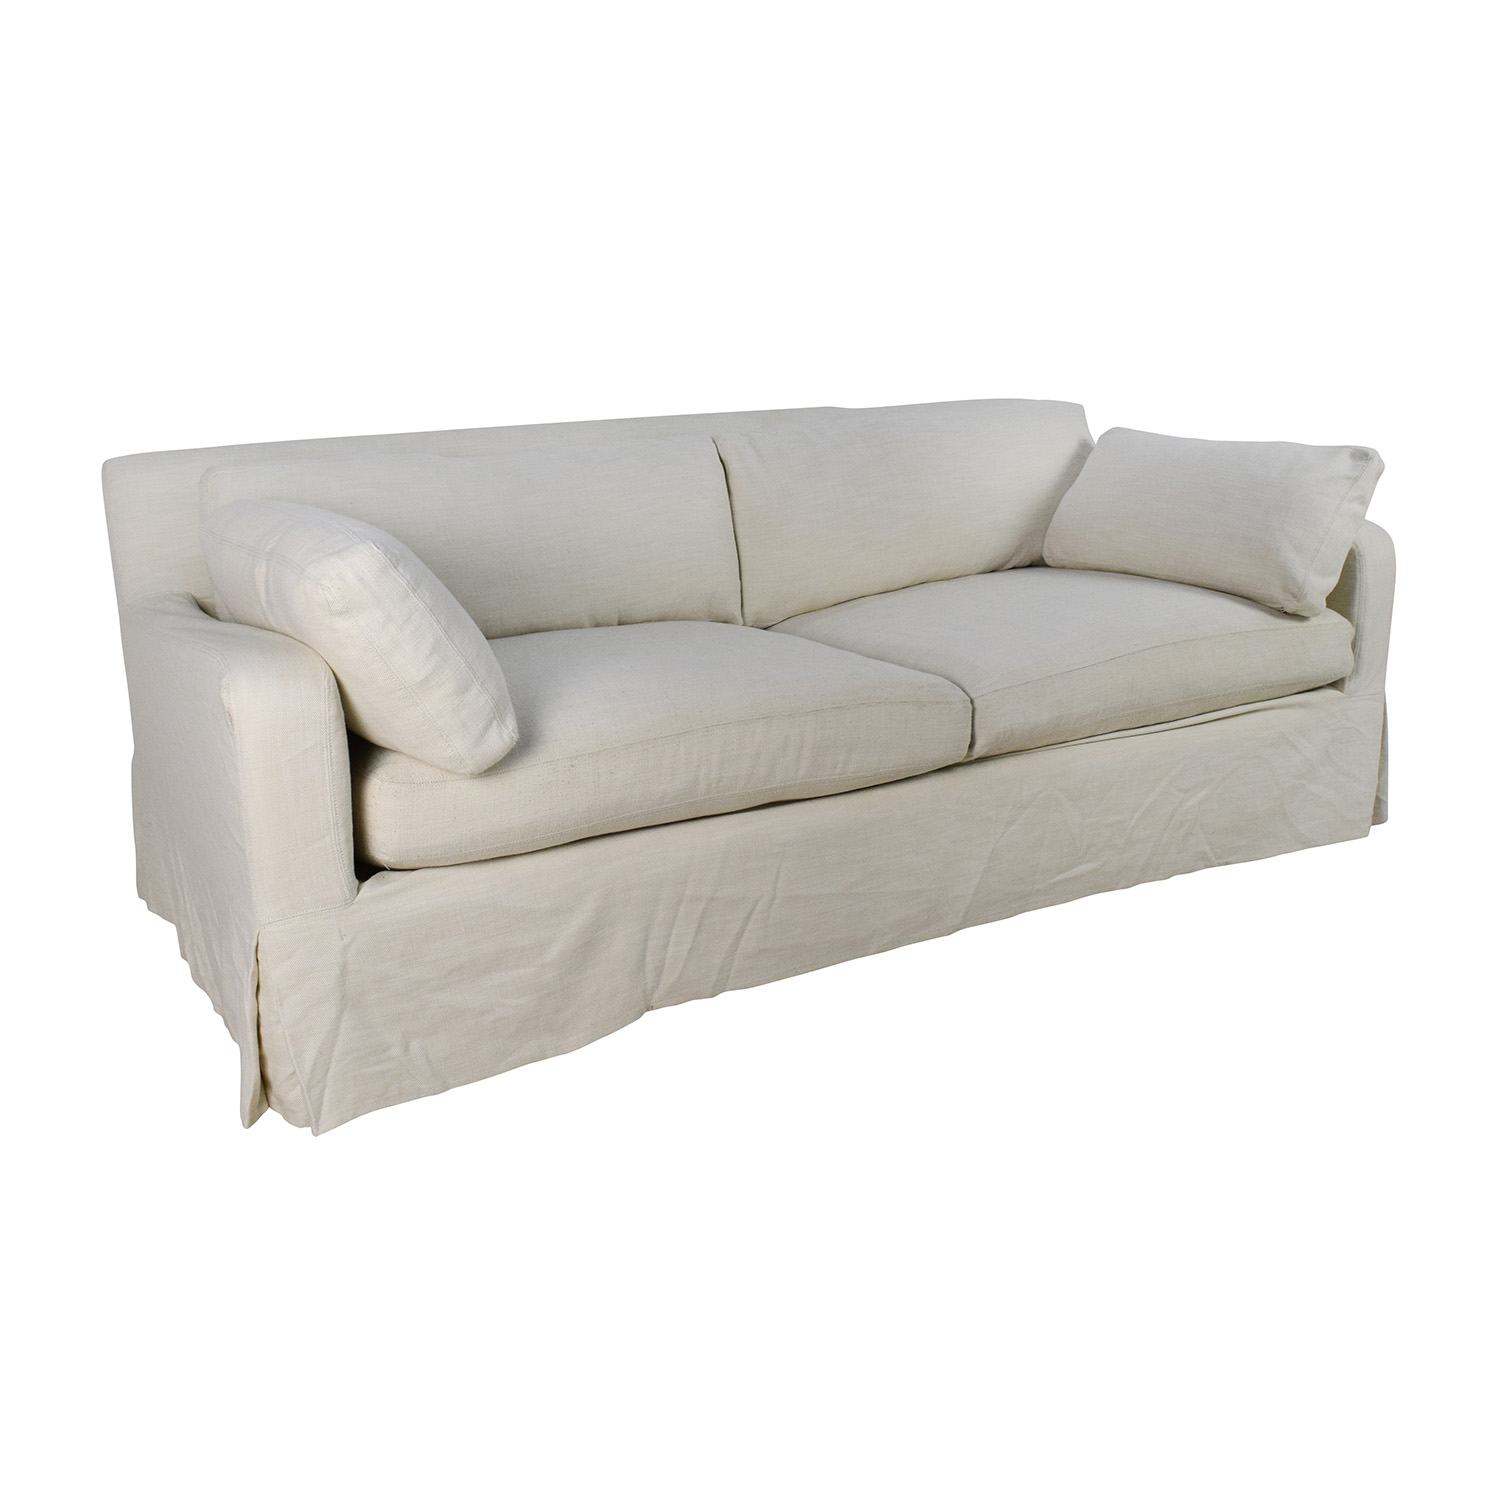 Fresh couch slipcovers restoration hardware sectional sofas for Restoration hardware sectional sofa sale